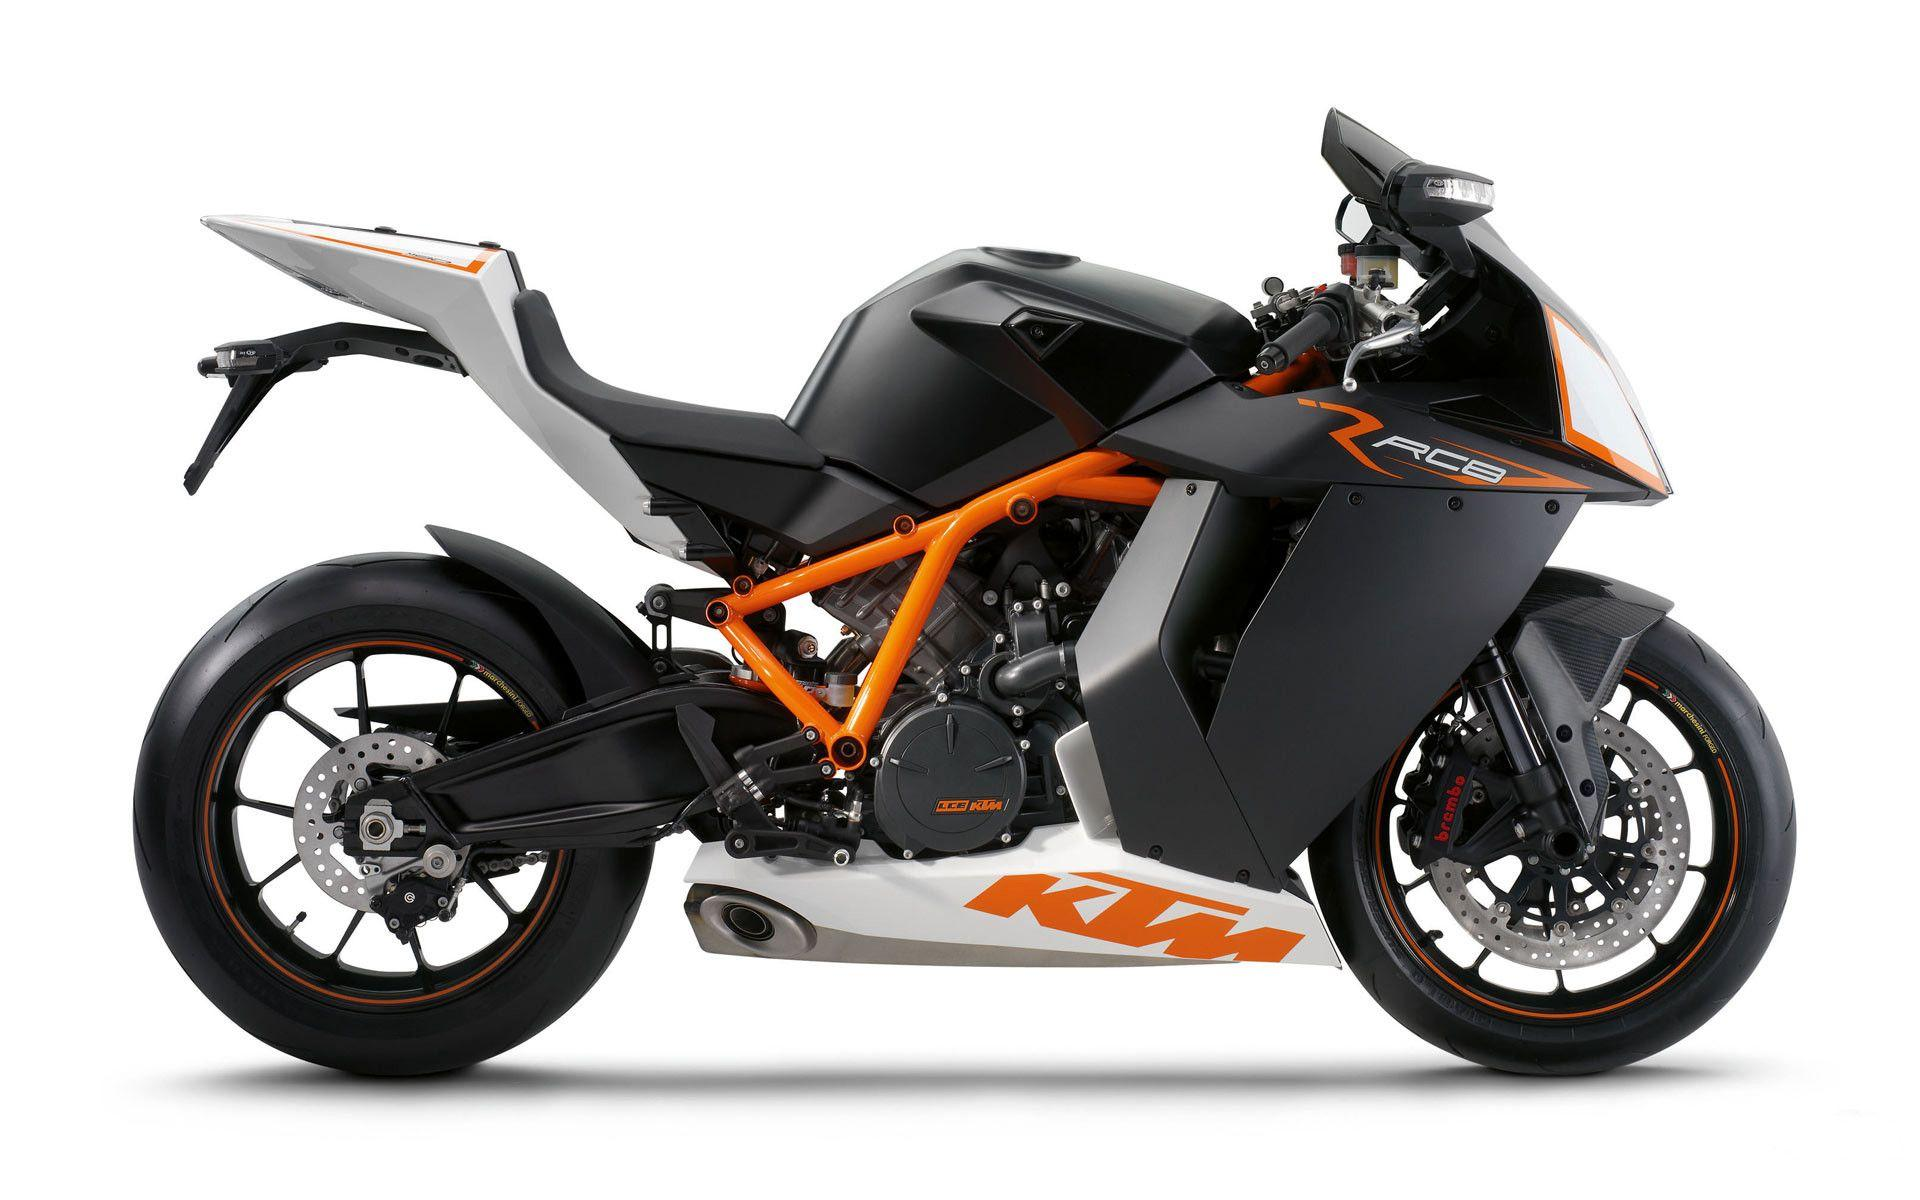 Ktm Rc8 2018 Wallpapers HD ·①